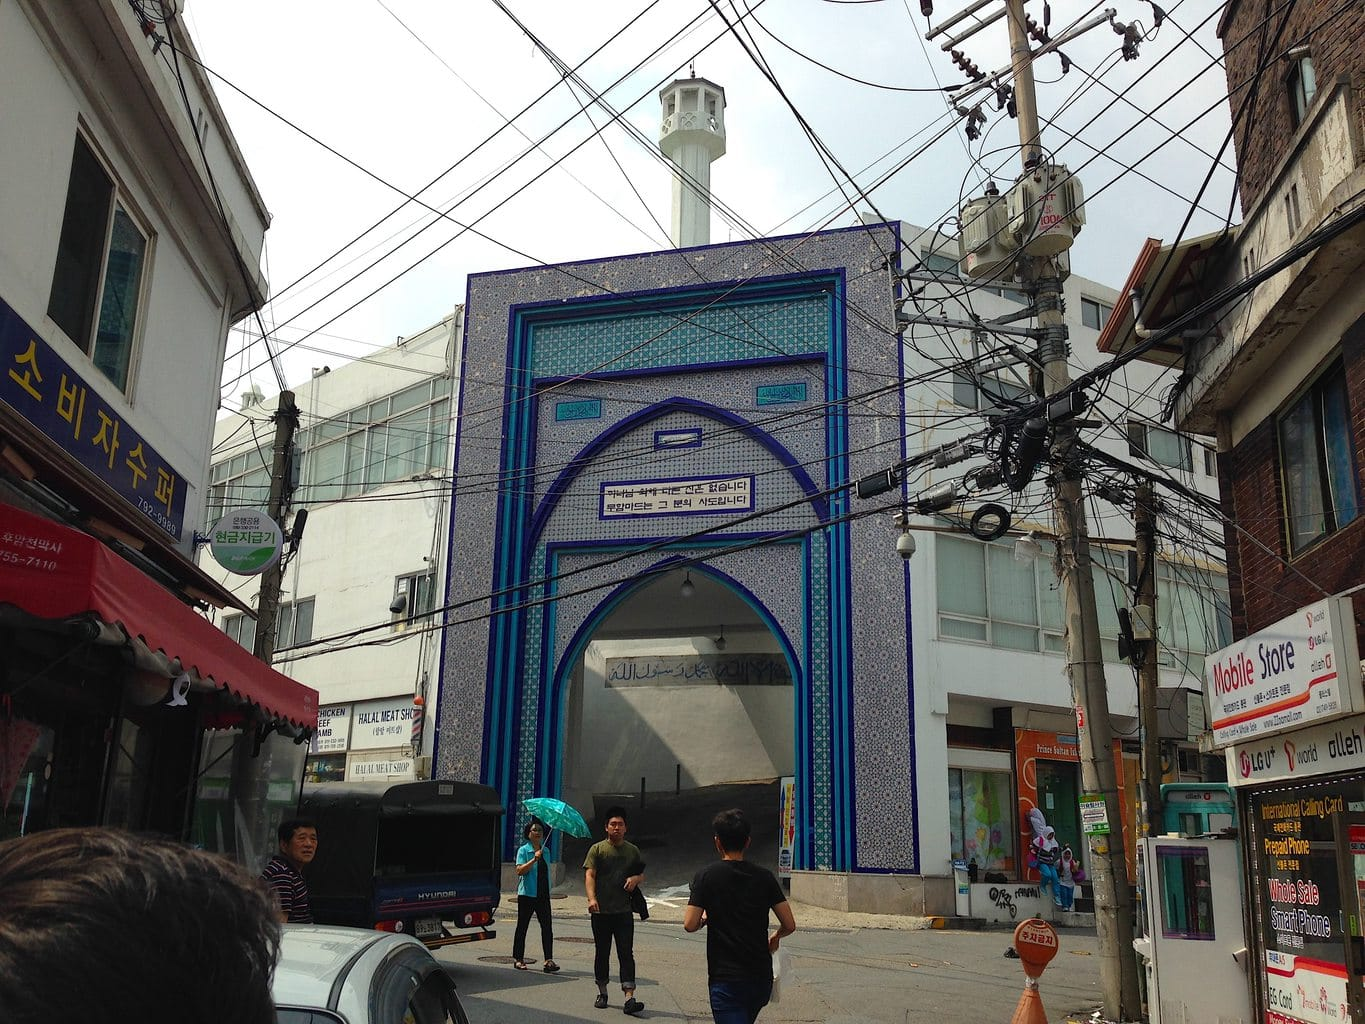 The mosque in Itaewon showcasing its multiculturalism